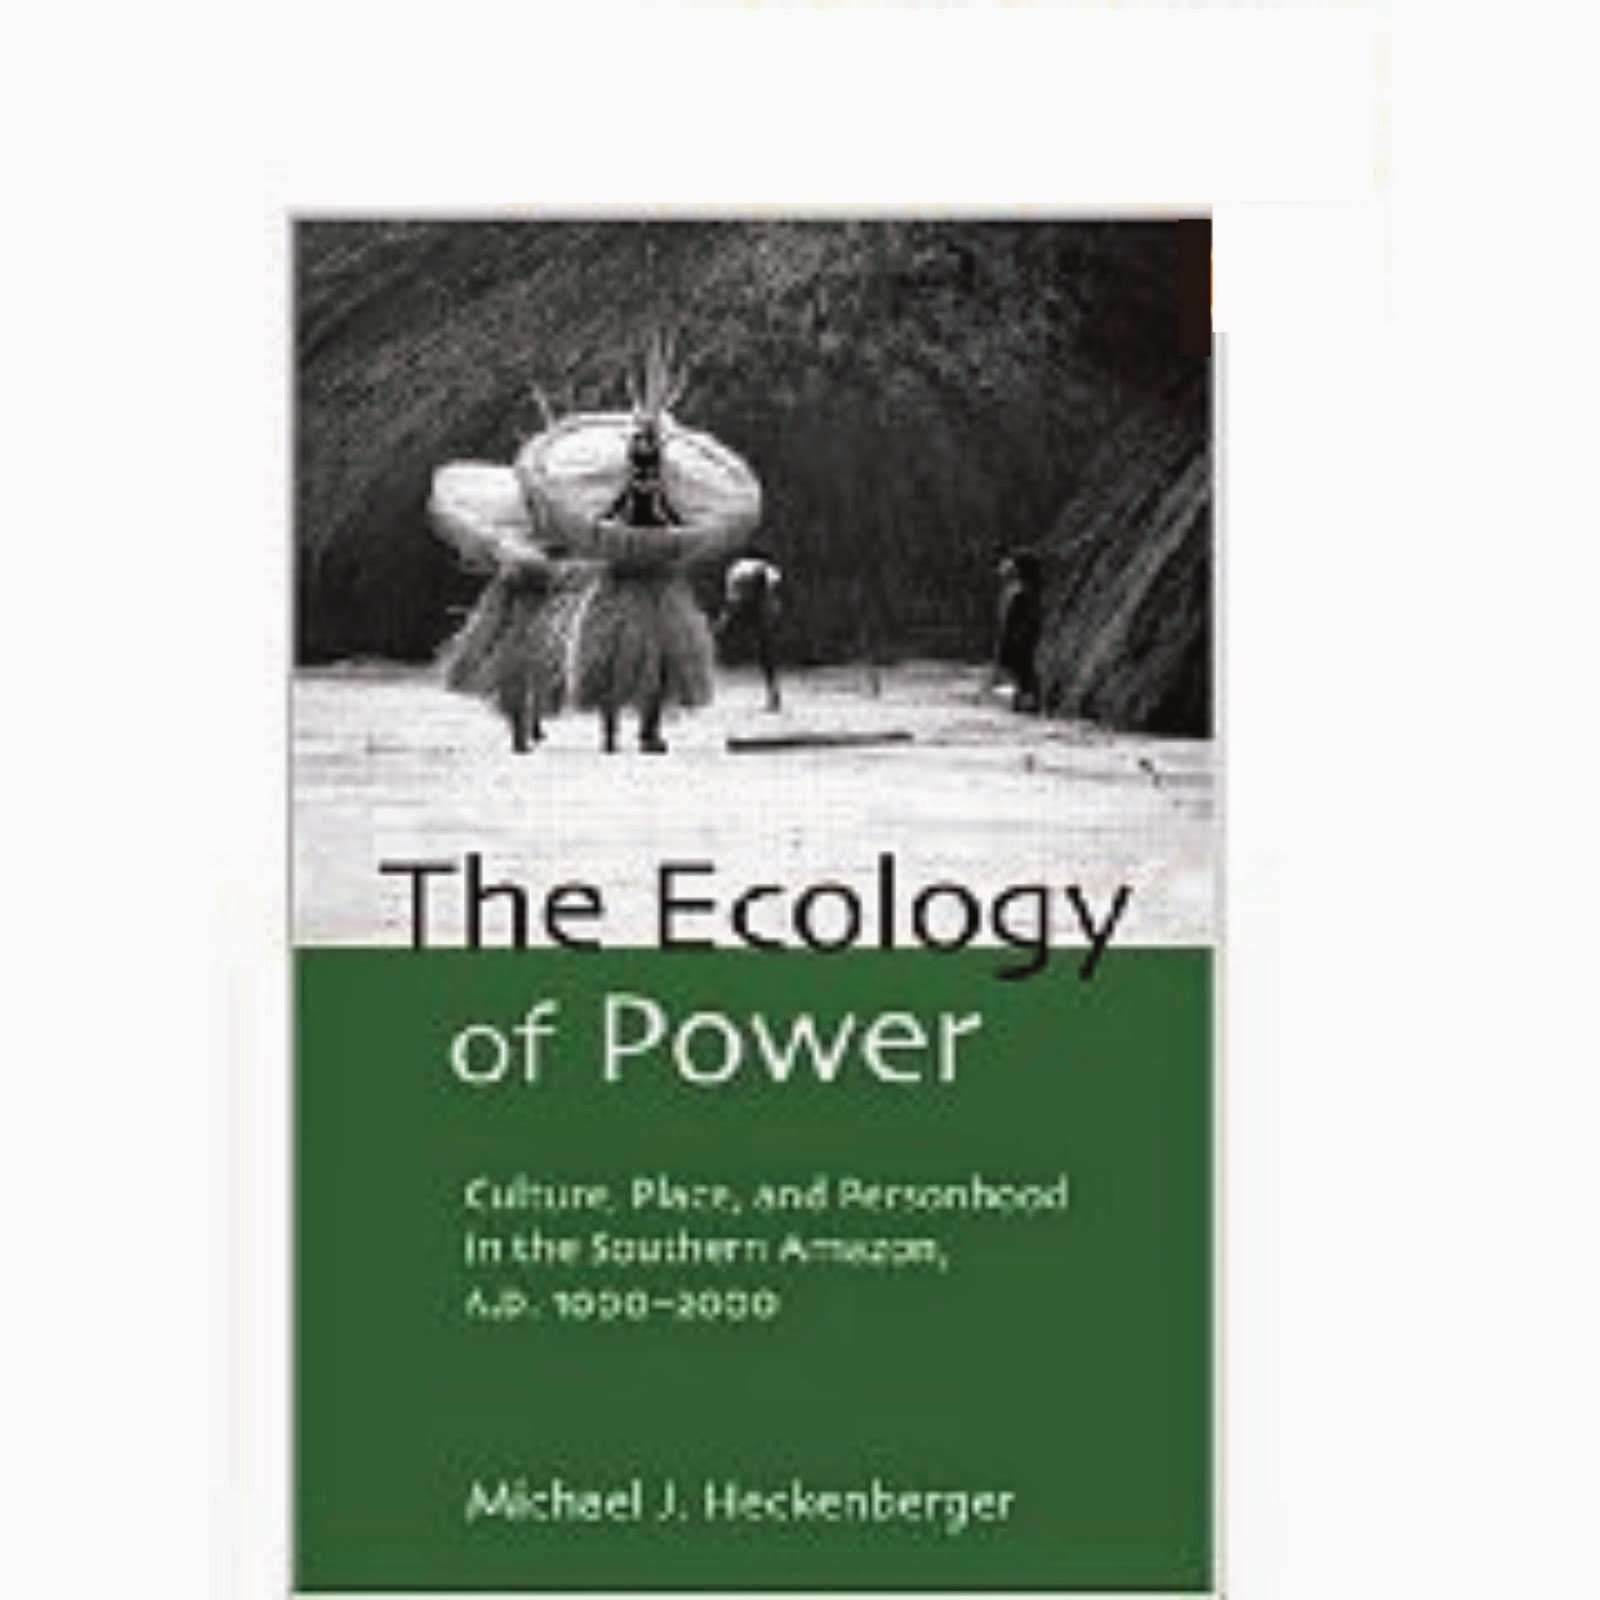 Livro - The Ecology Of Power - Michael J. Heckenberger2